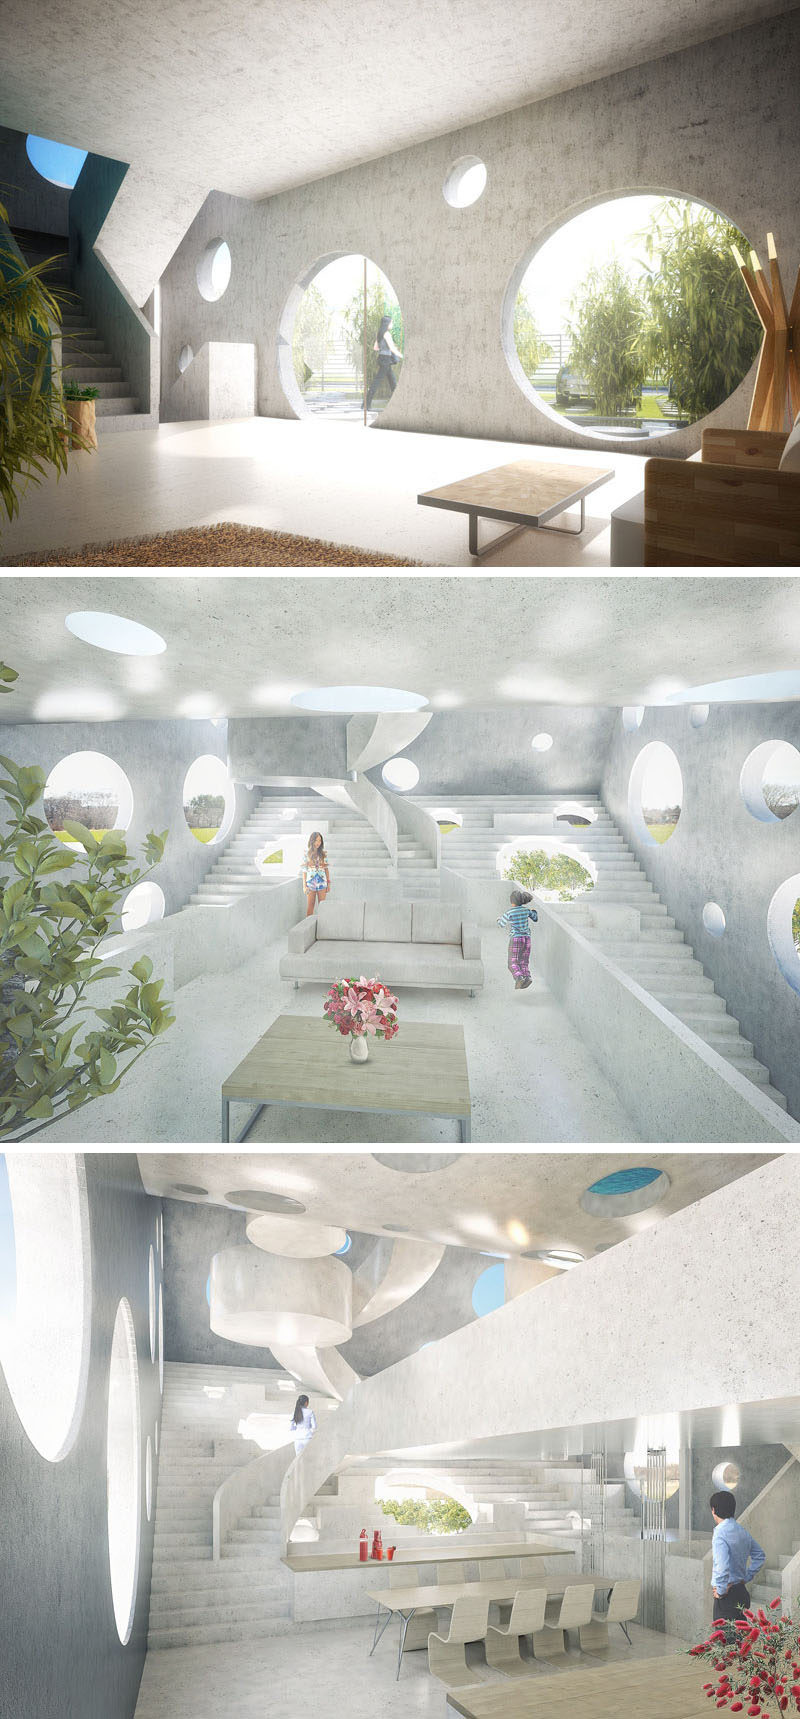 On the lower levels of this futuristic concept home are two children's rooms, a master bedroom and a guest bedroom, which are all stacked above a ground-level garden tea room, designed for entertaining. As you climb the stairs, other communal living areas reveal themselves.